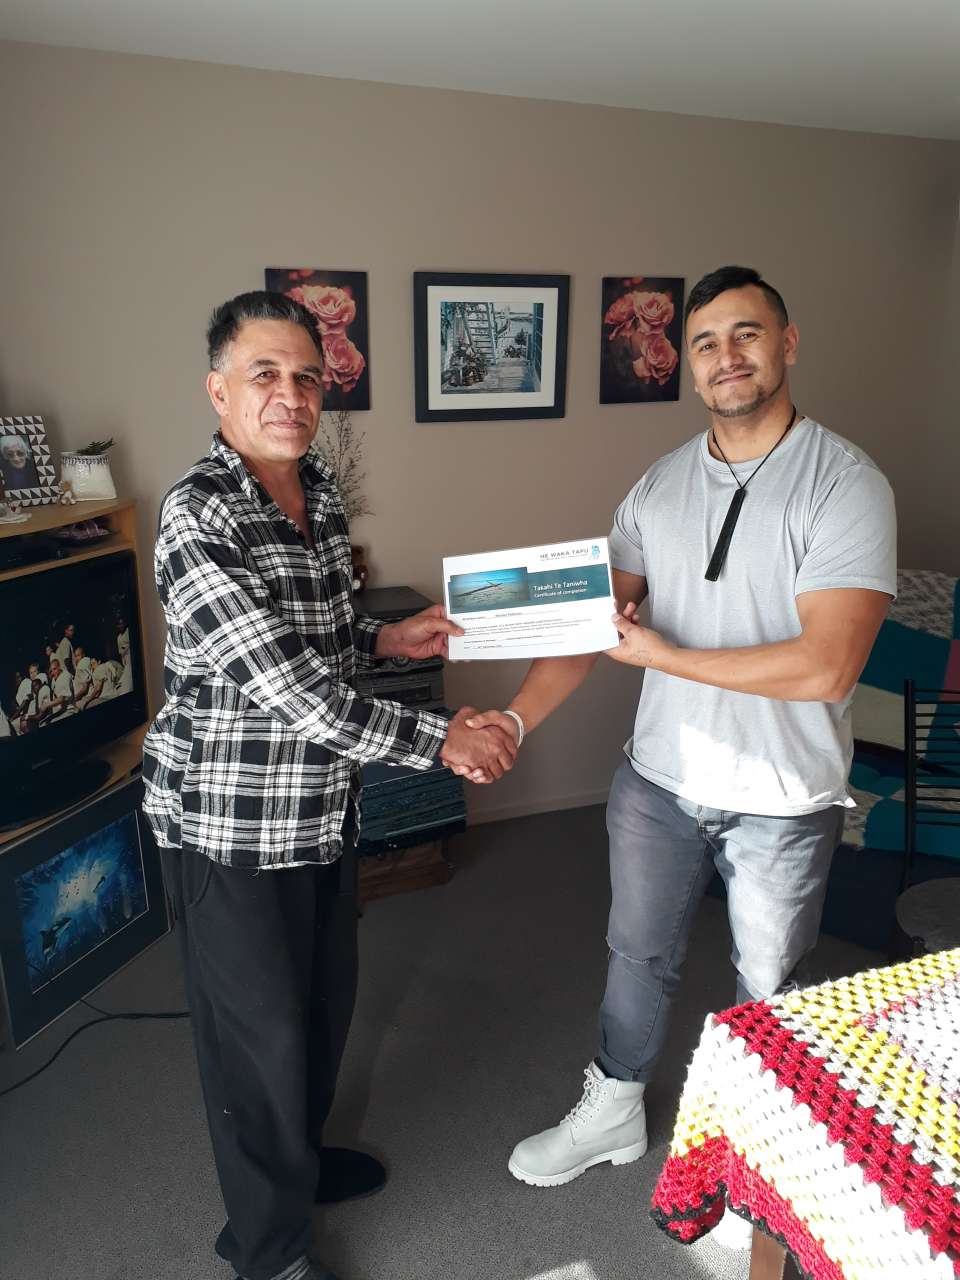 Unable to graduate at group? That's ok we'll take the graduation to your home ????Huge mihi to Michael Robinson for graduating  on the Takahi Te Taniwha (TTT) Kei te mihi nui ki a koe Micheal well done! This is your chance now to practice what you have added to your kete. #TTTGRADUATE?#WATCHTHISSPACEMORRTOCOME?